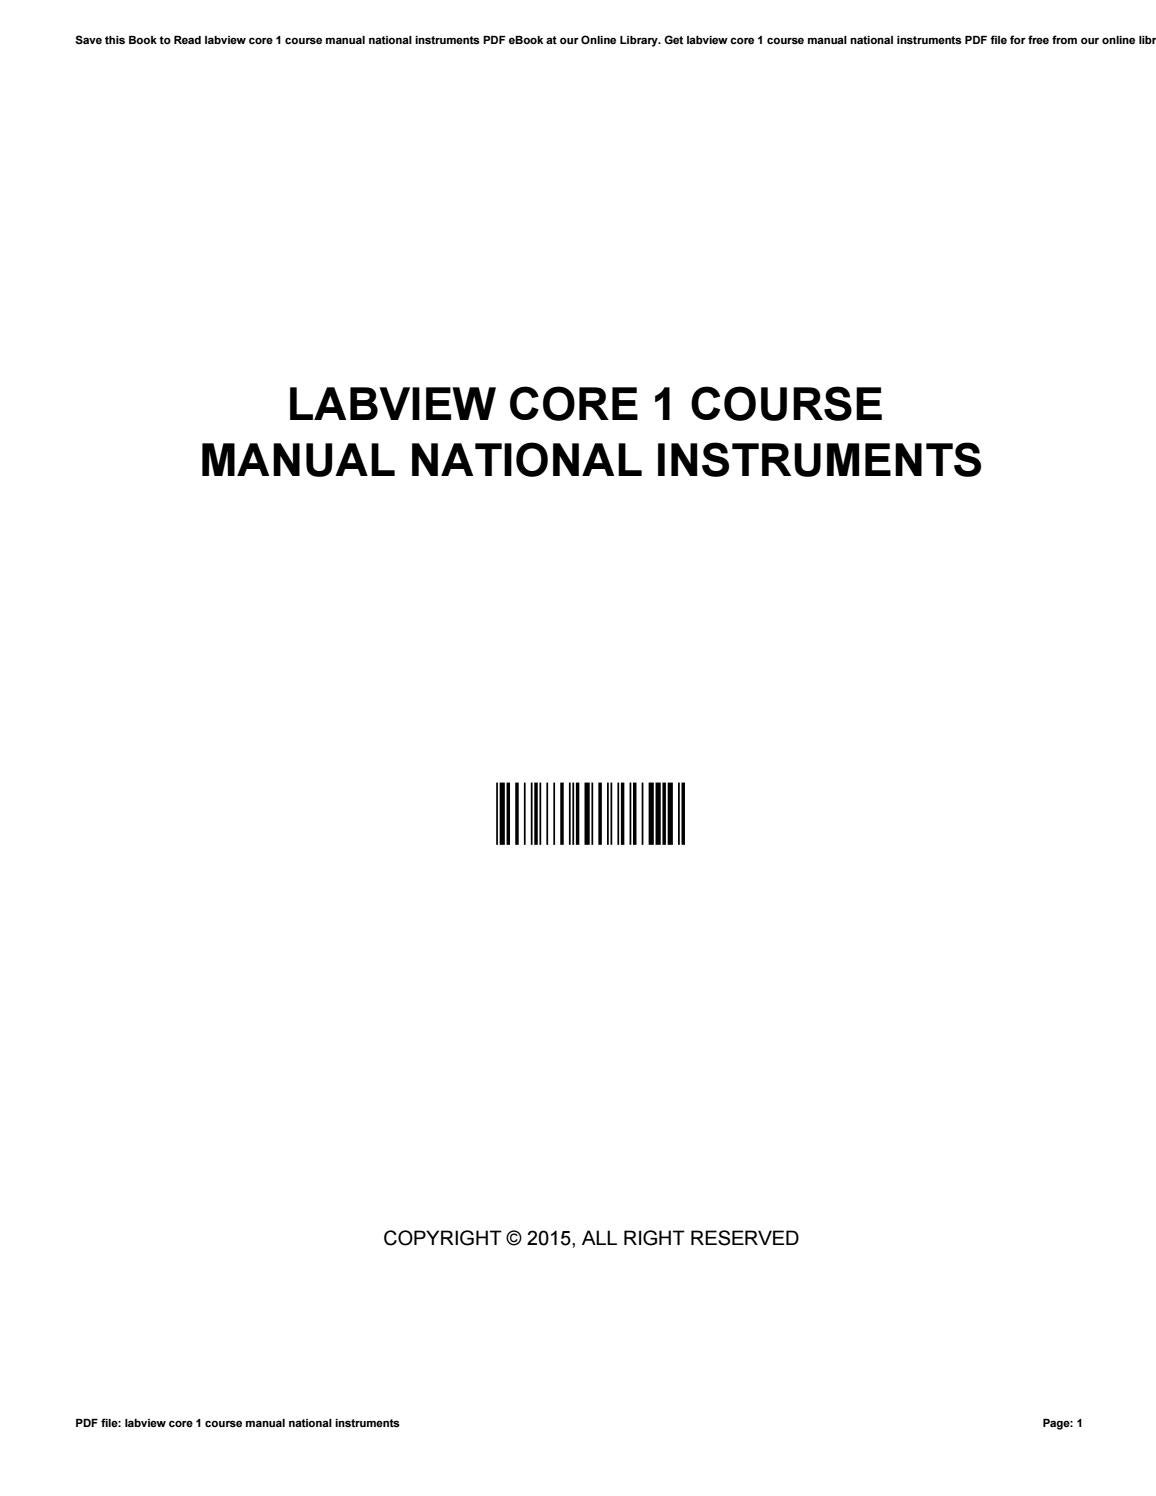 Labview core 1 course manual national instruments by